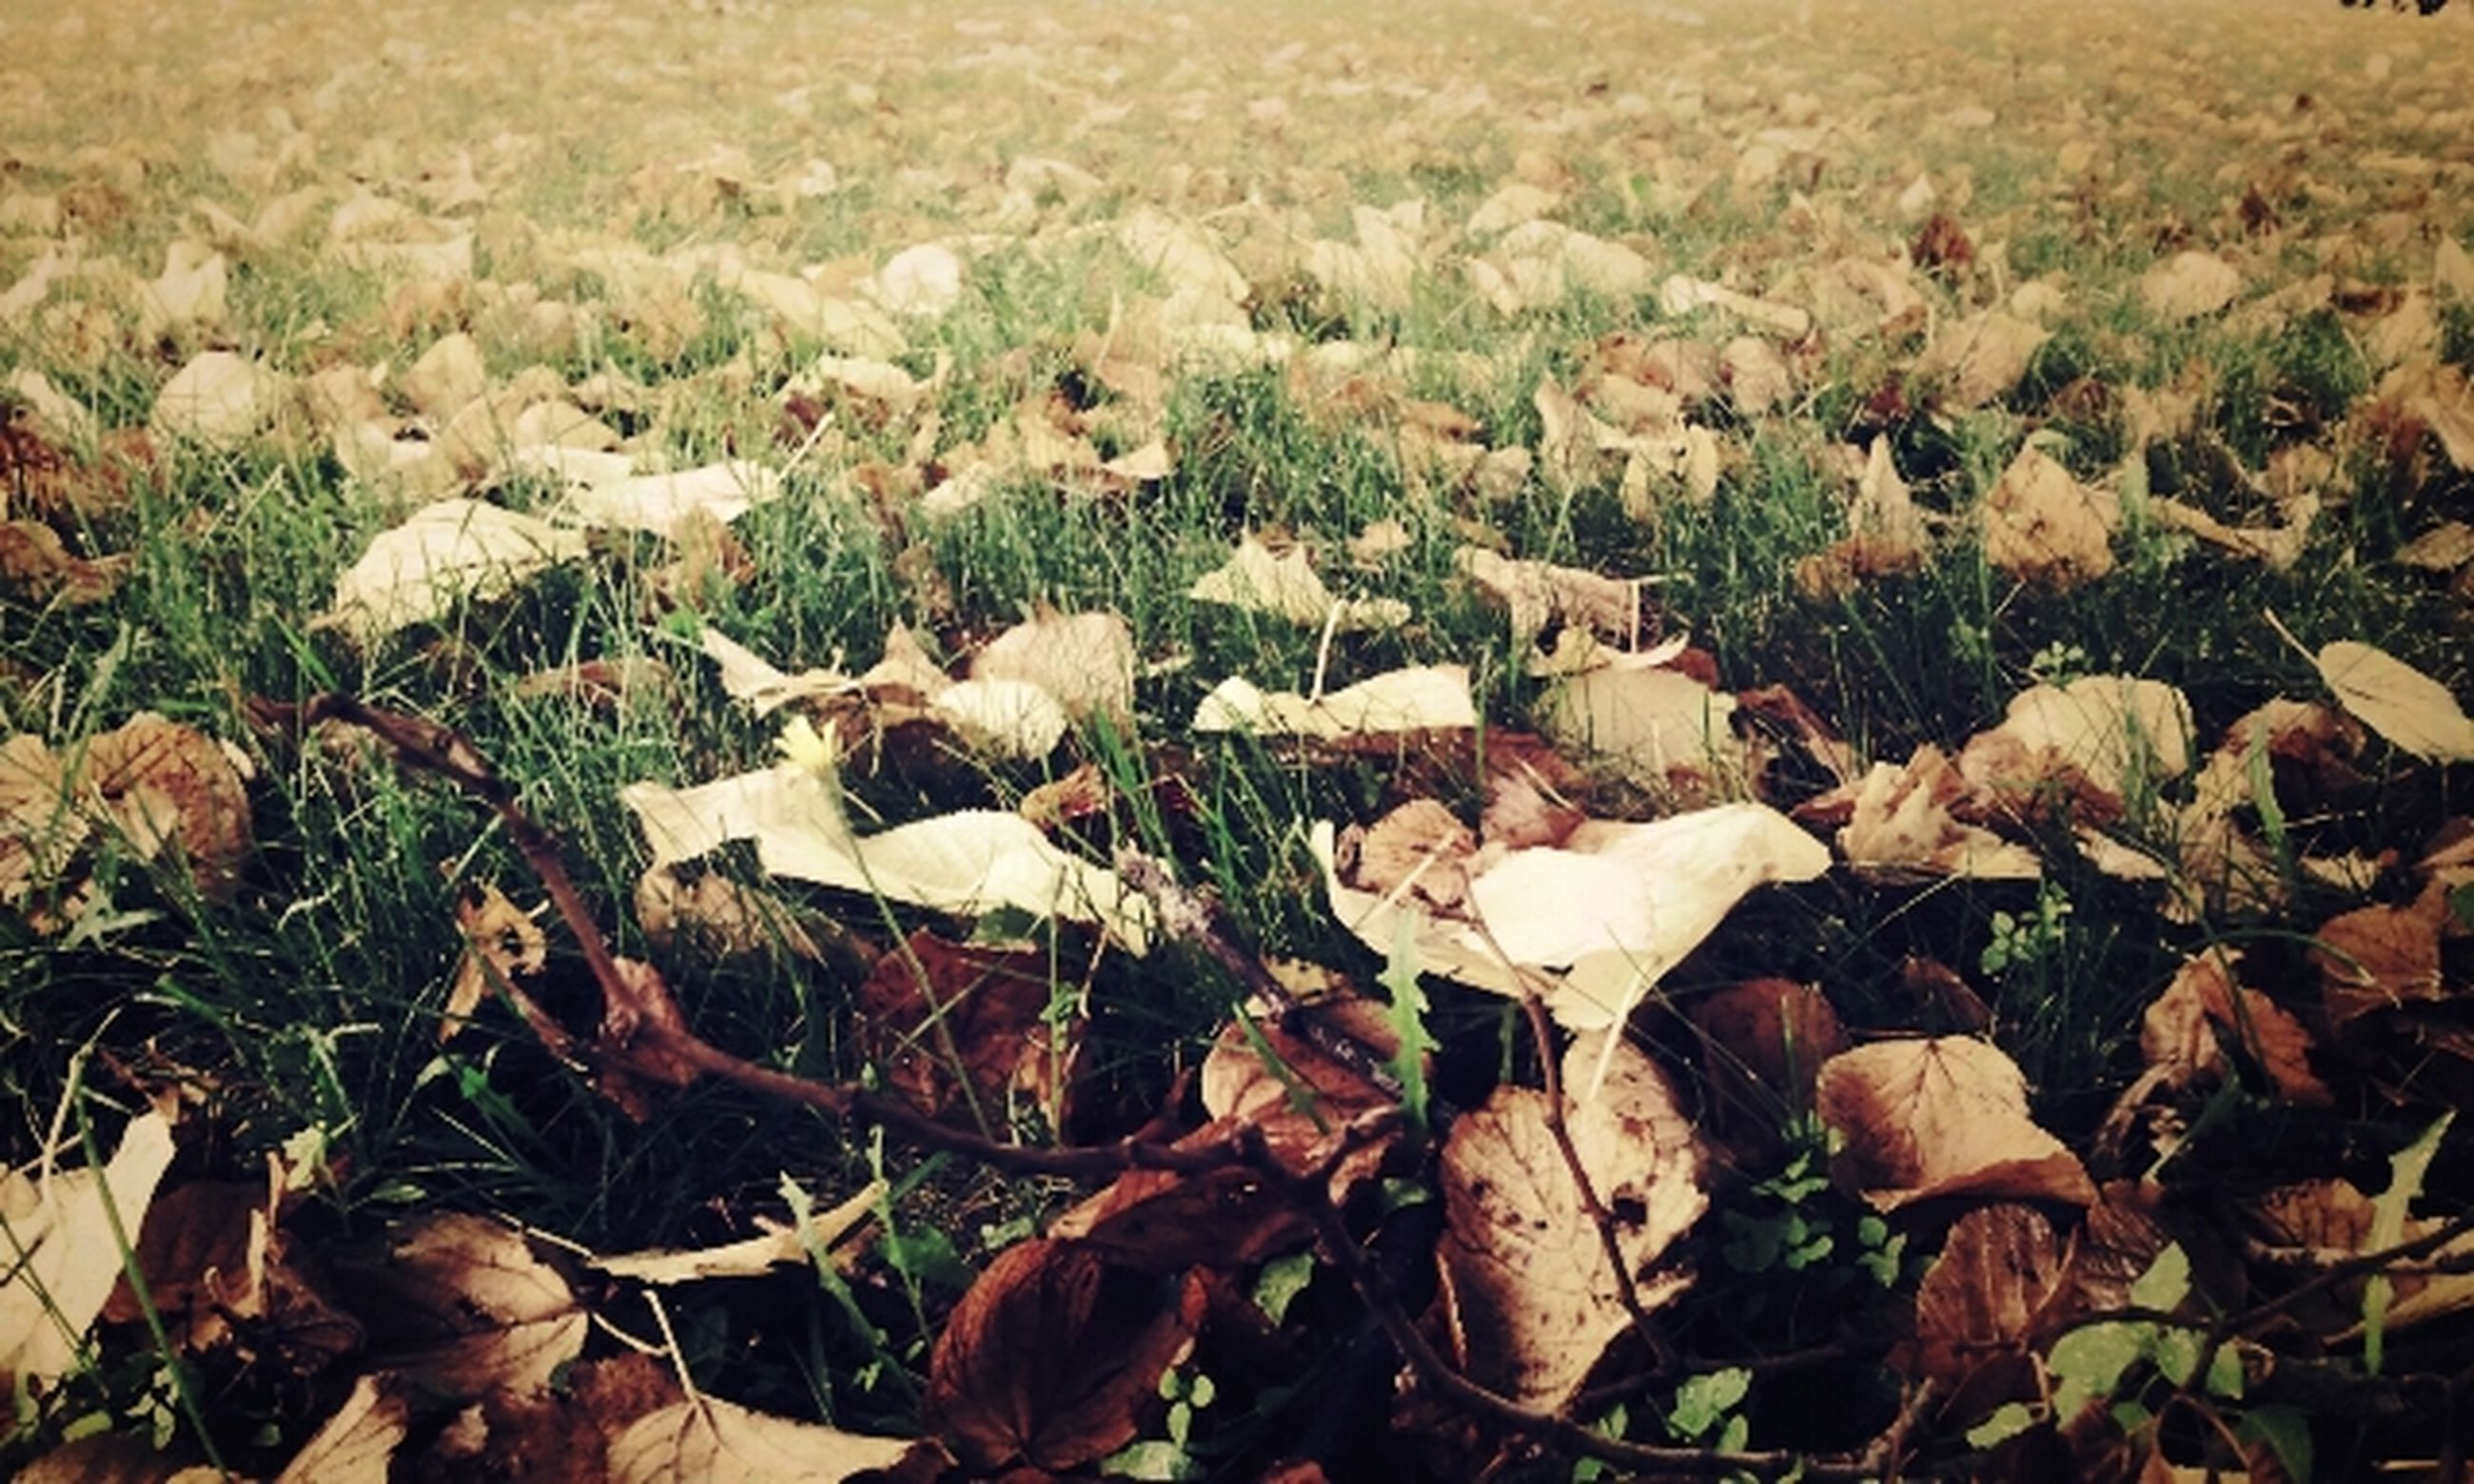 field, dry, leaf, autumn, grass, nature, fallen, change, high angle view, leaves, abundance, tranquility, season, day, outdoors, no people, beauty in nature, growth, full frame, ground